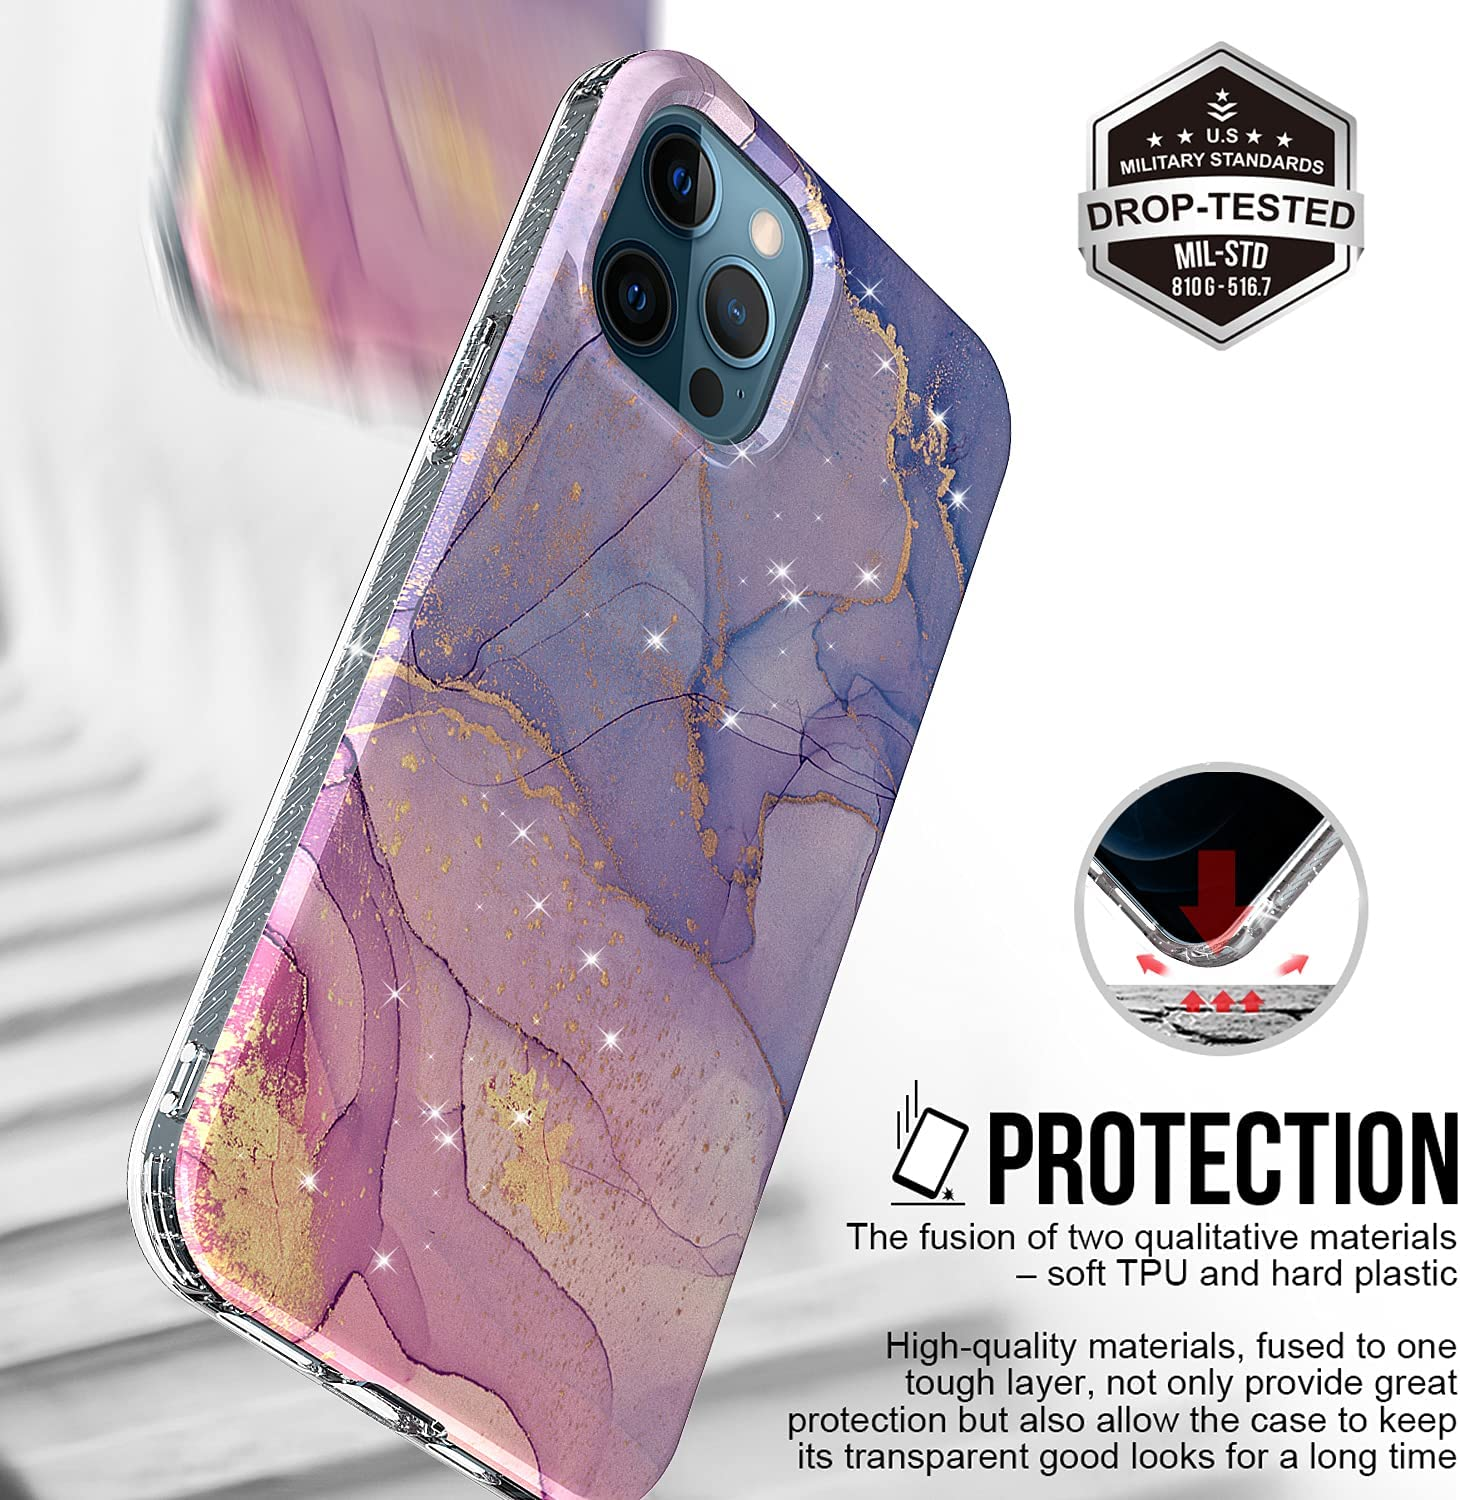 Muntinfe Gold Glitter Sparkle Case Compatible with iPhone 12 Pro Max 6.7 Inch Marble Design Girls Women Shockproof Hard Back + Glitter Soft TPU Bumper Anti-Yellow Protective Phone Cover, Marble Purple